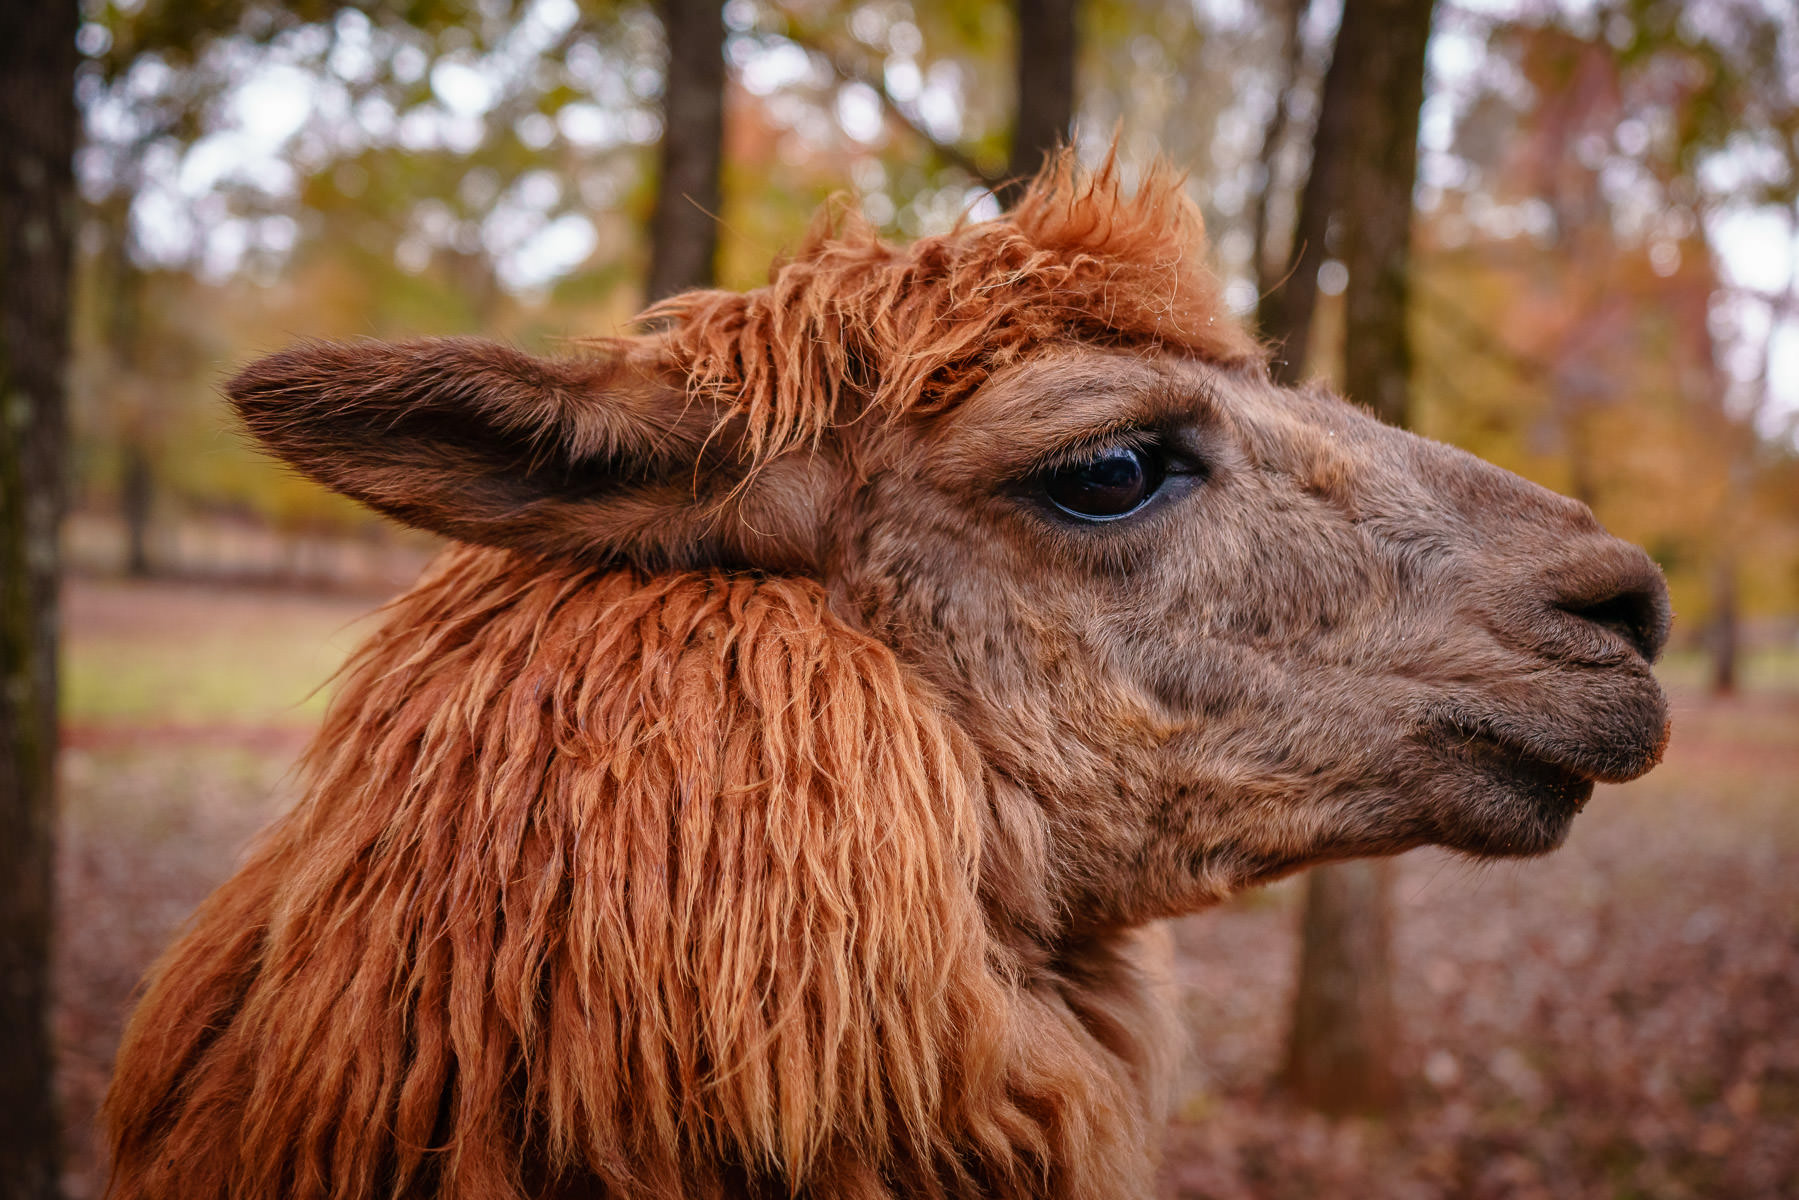 An alpaca poses for a portrait at Cherokee Trace Drive-Thru Safari near Jacksonville, Texas.